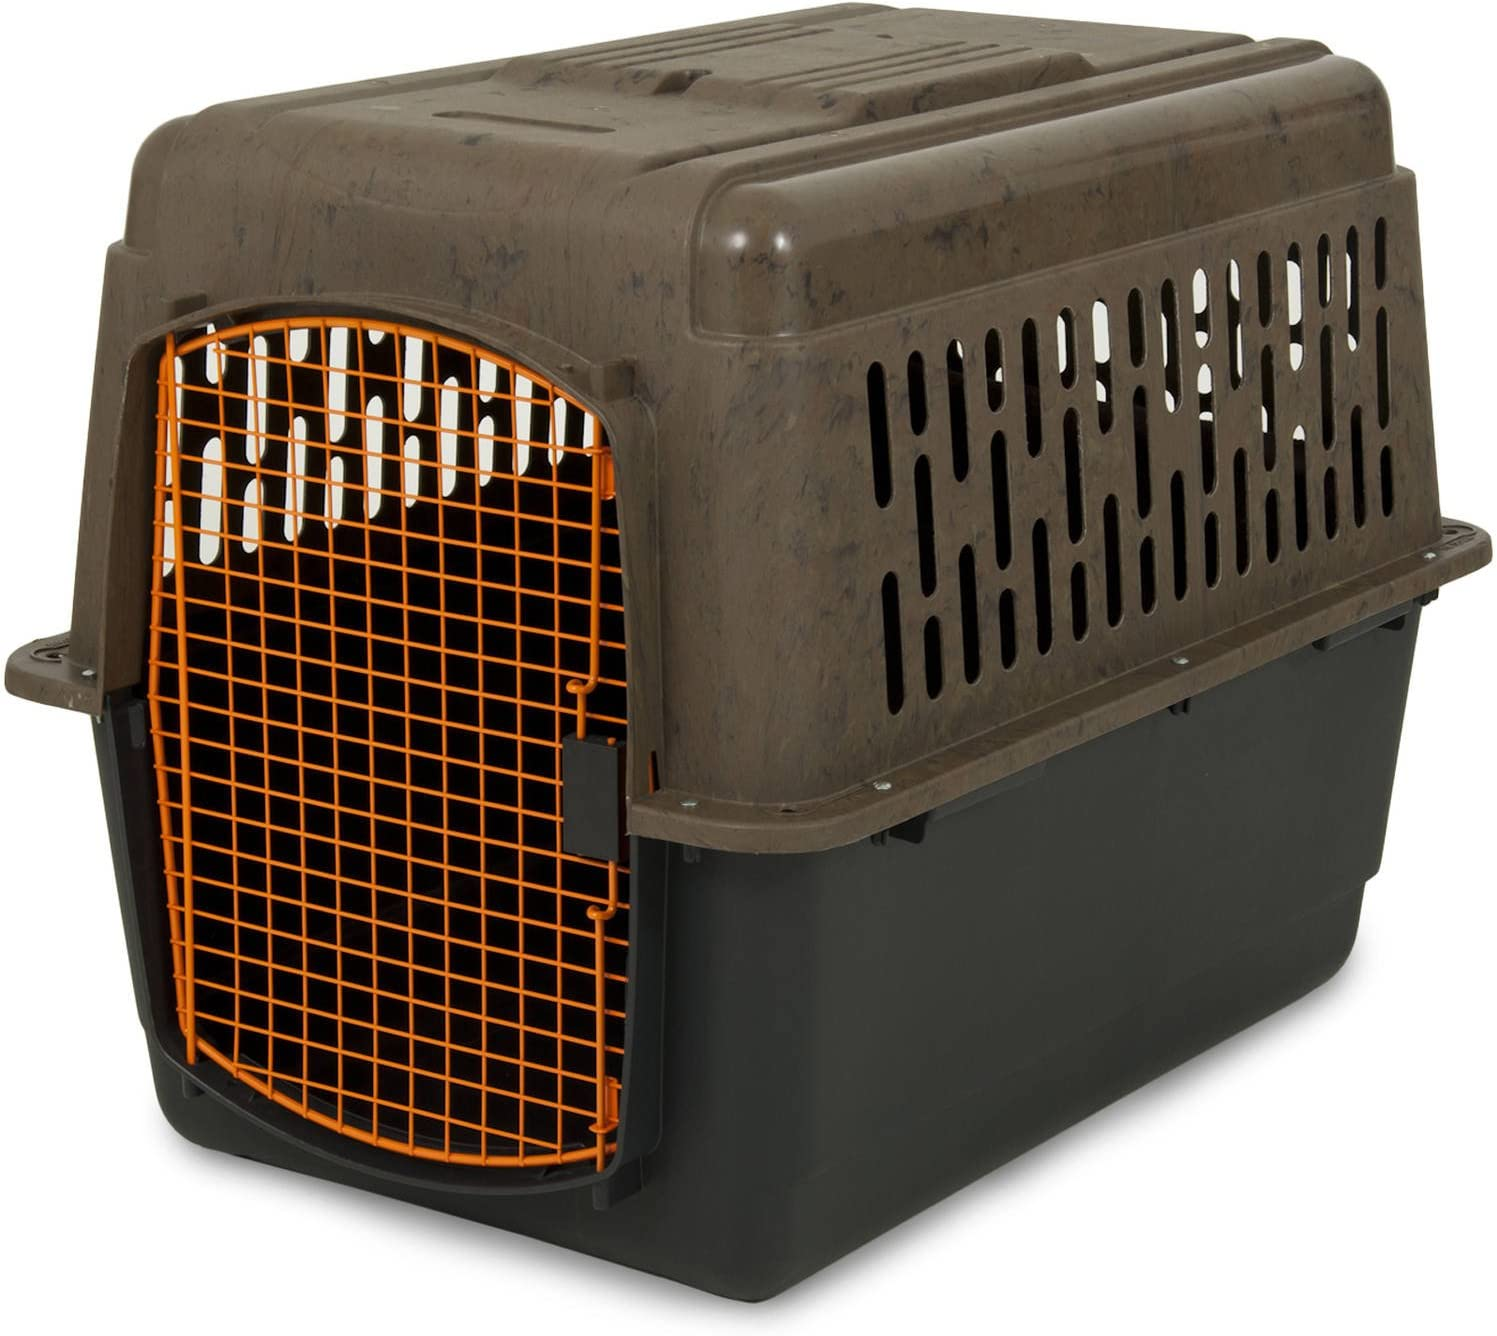 Ruff Maxx 36 Kennel for Dogs Weighing 50-70 lbs, Camo Orange